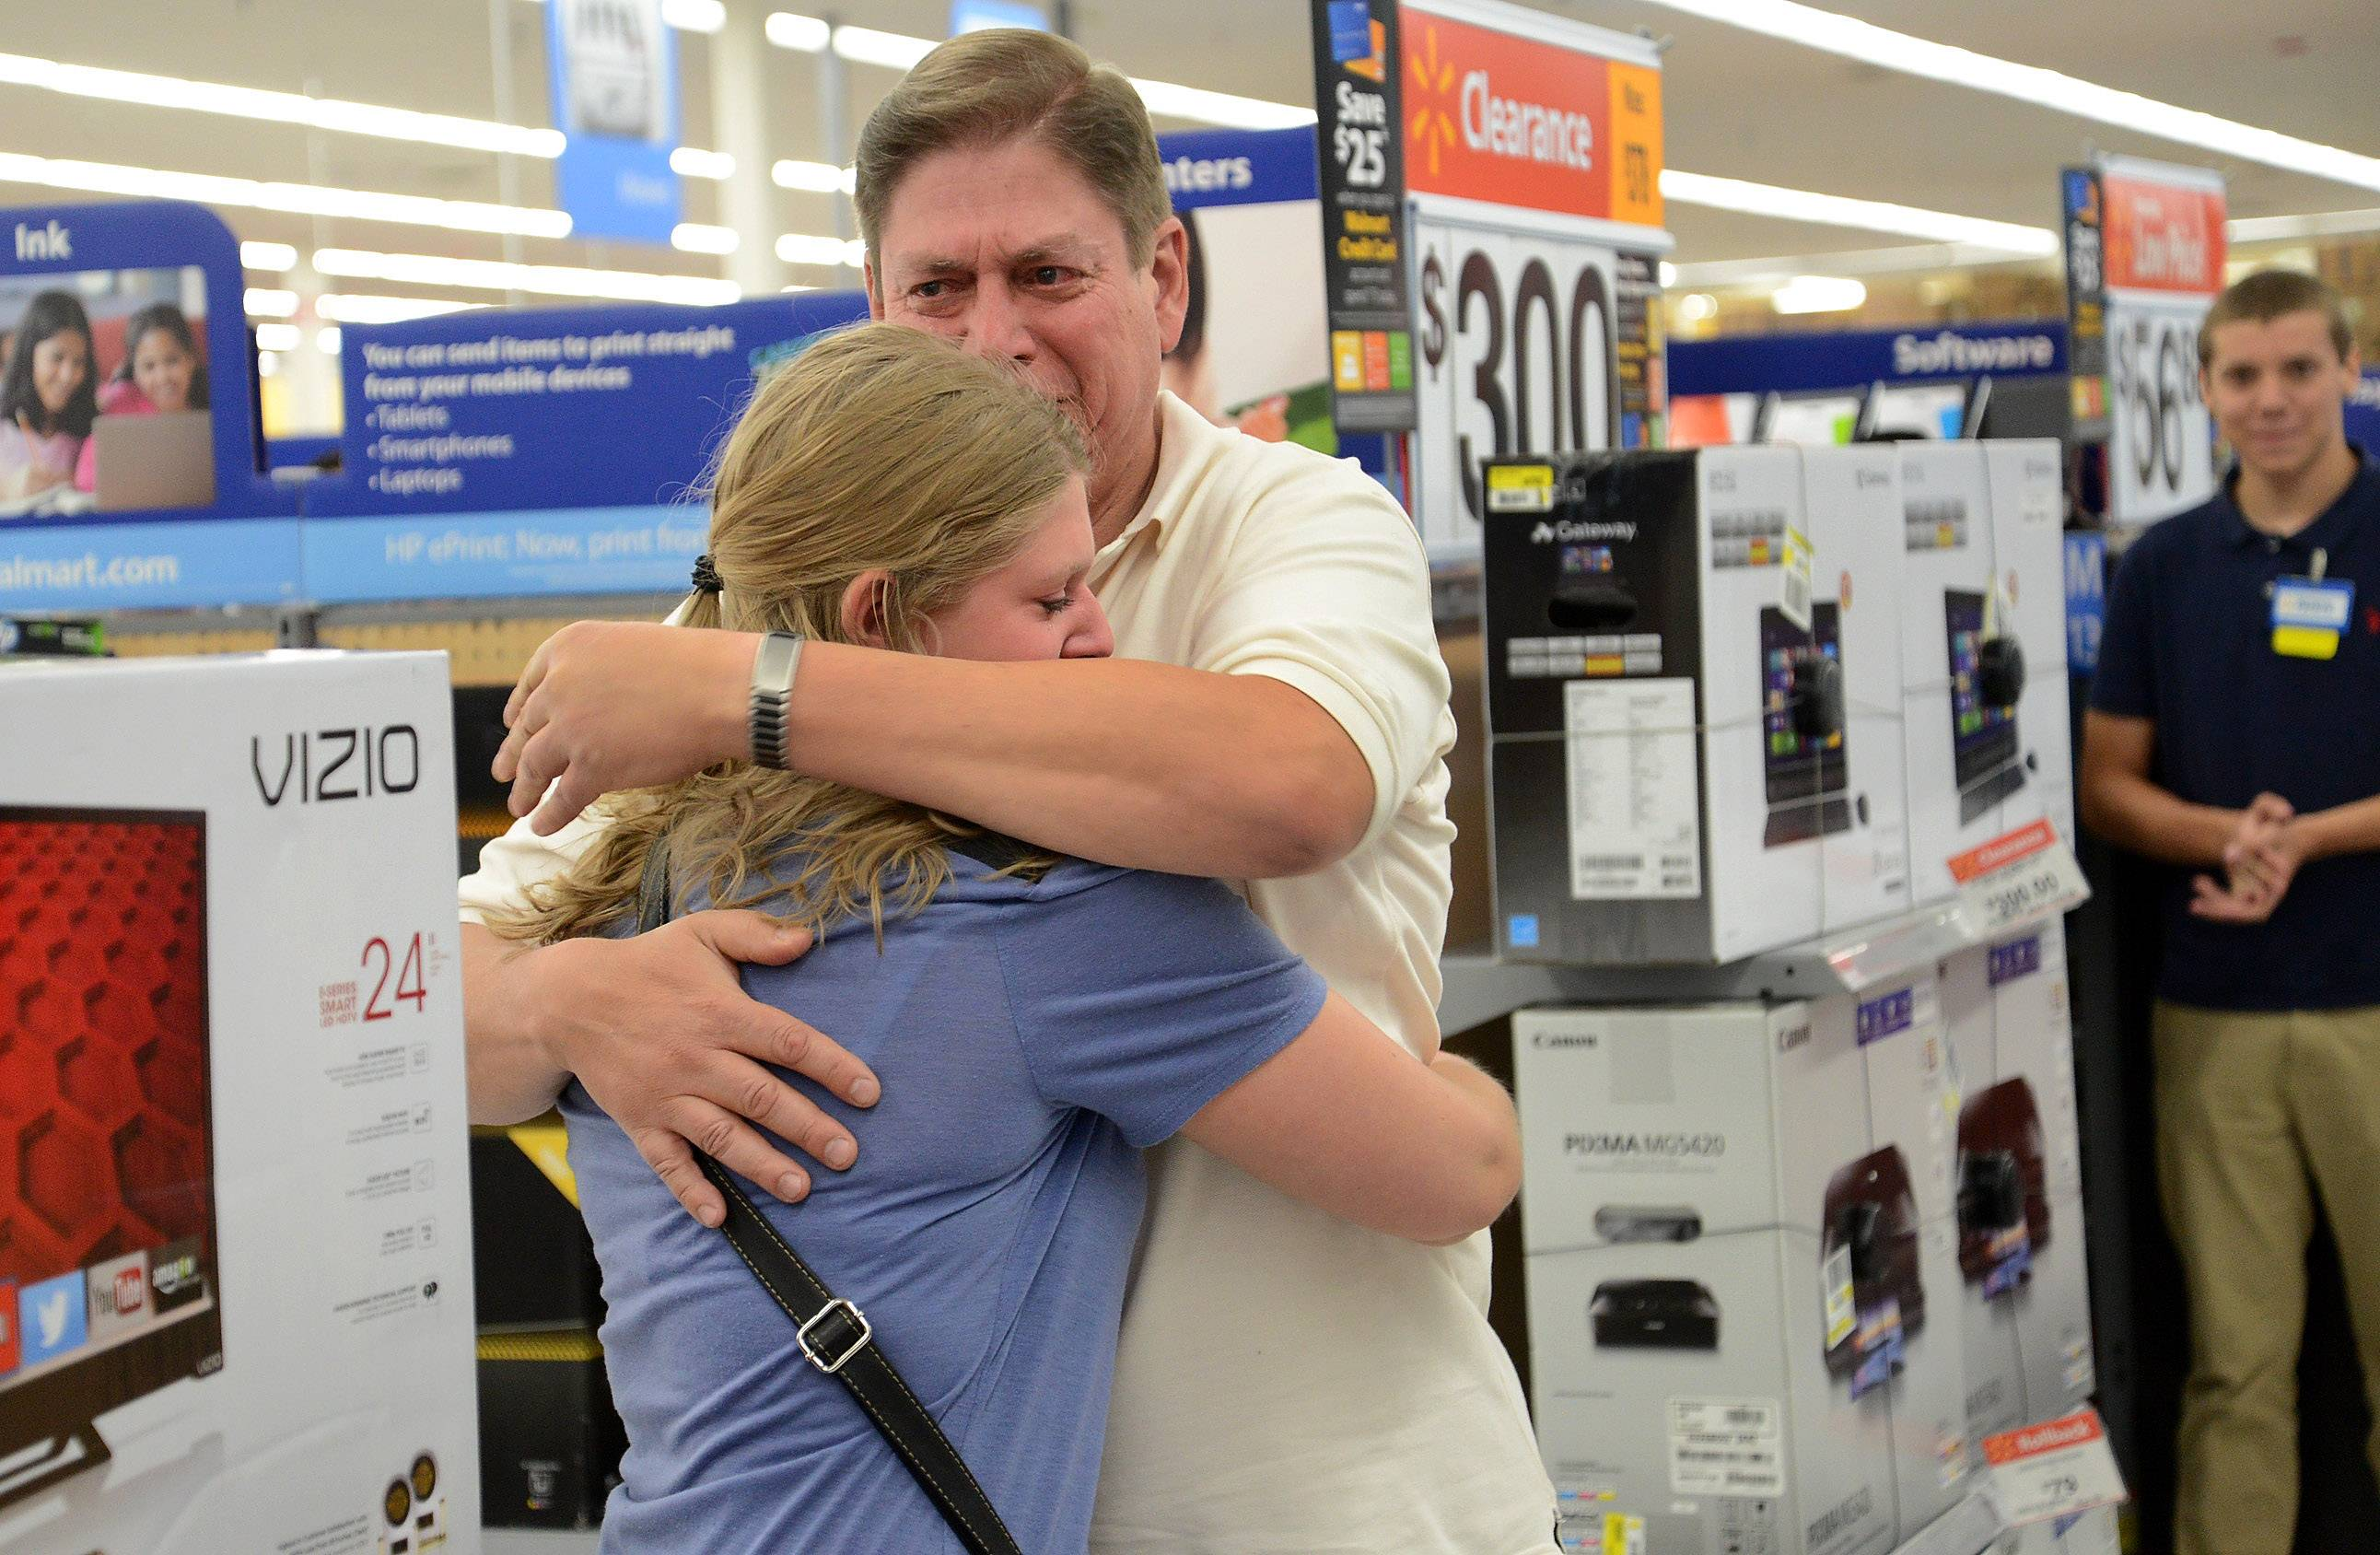 Michael Perrella, of Wheeling, is surprised at the Wheeling Walmart after his daughter Nicole's entry won him a national contest sponsored by Vizio.